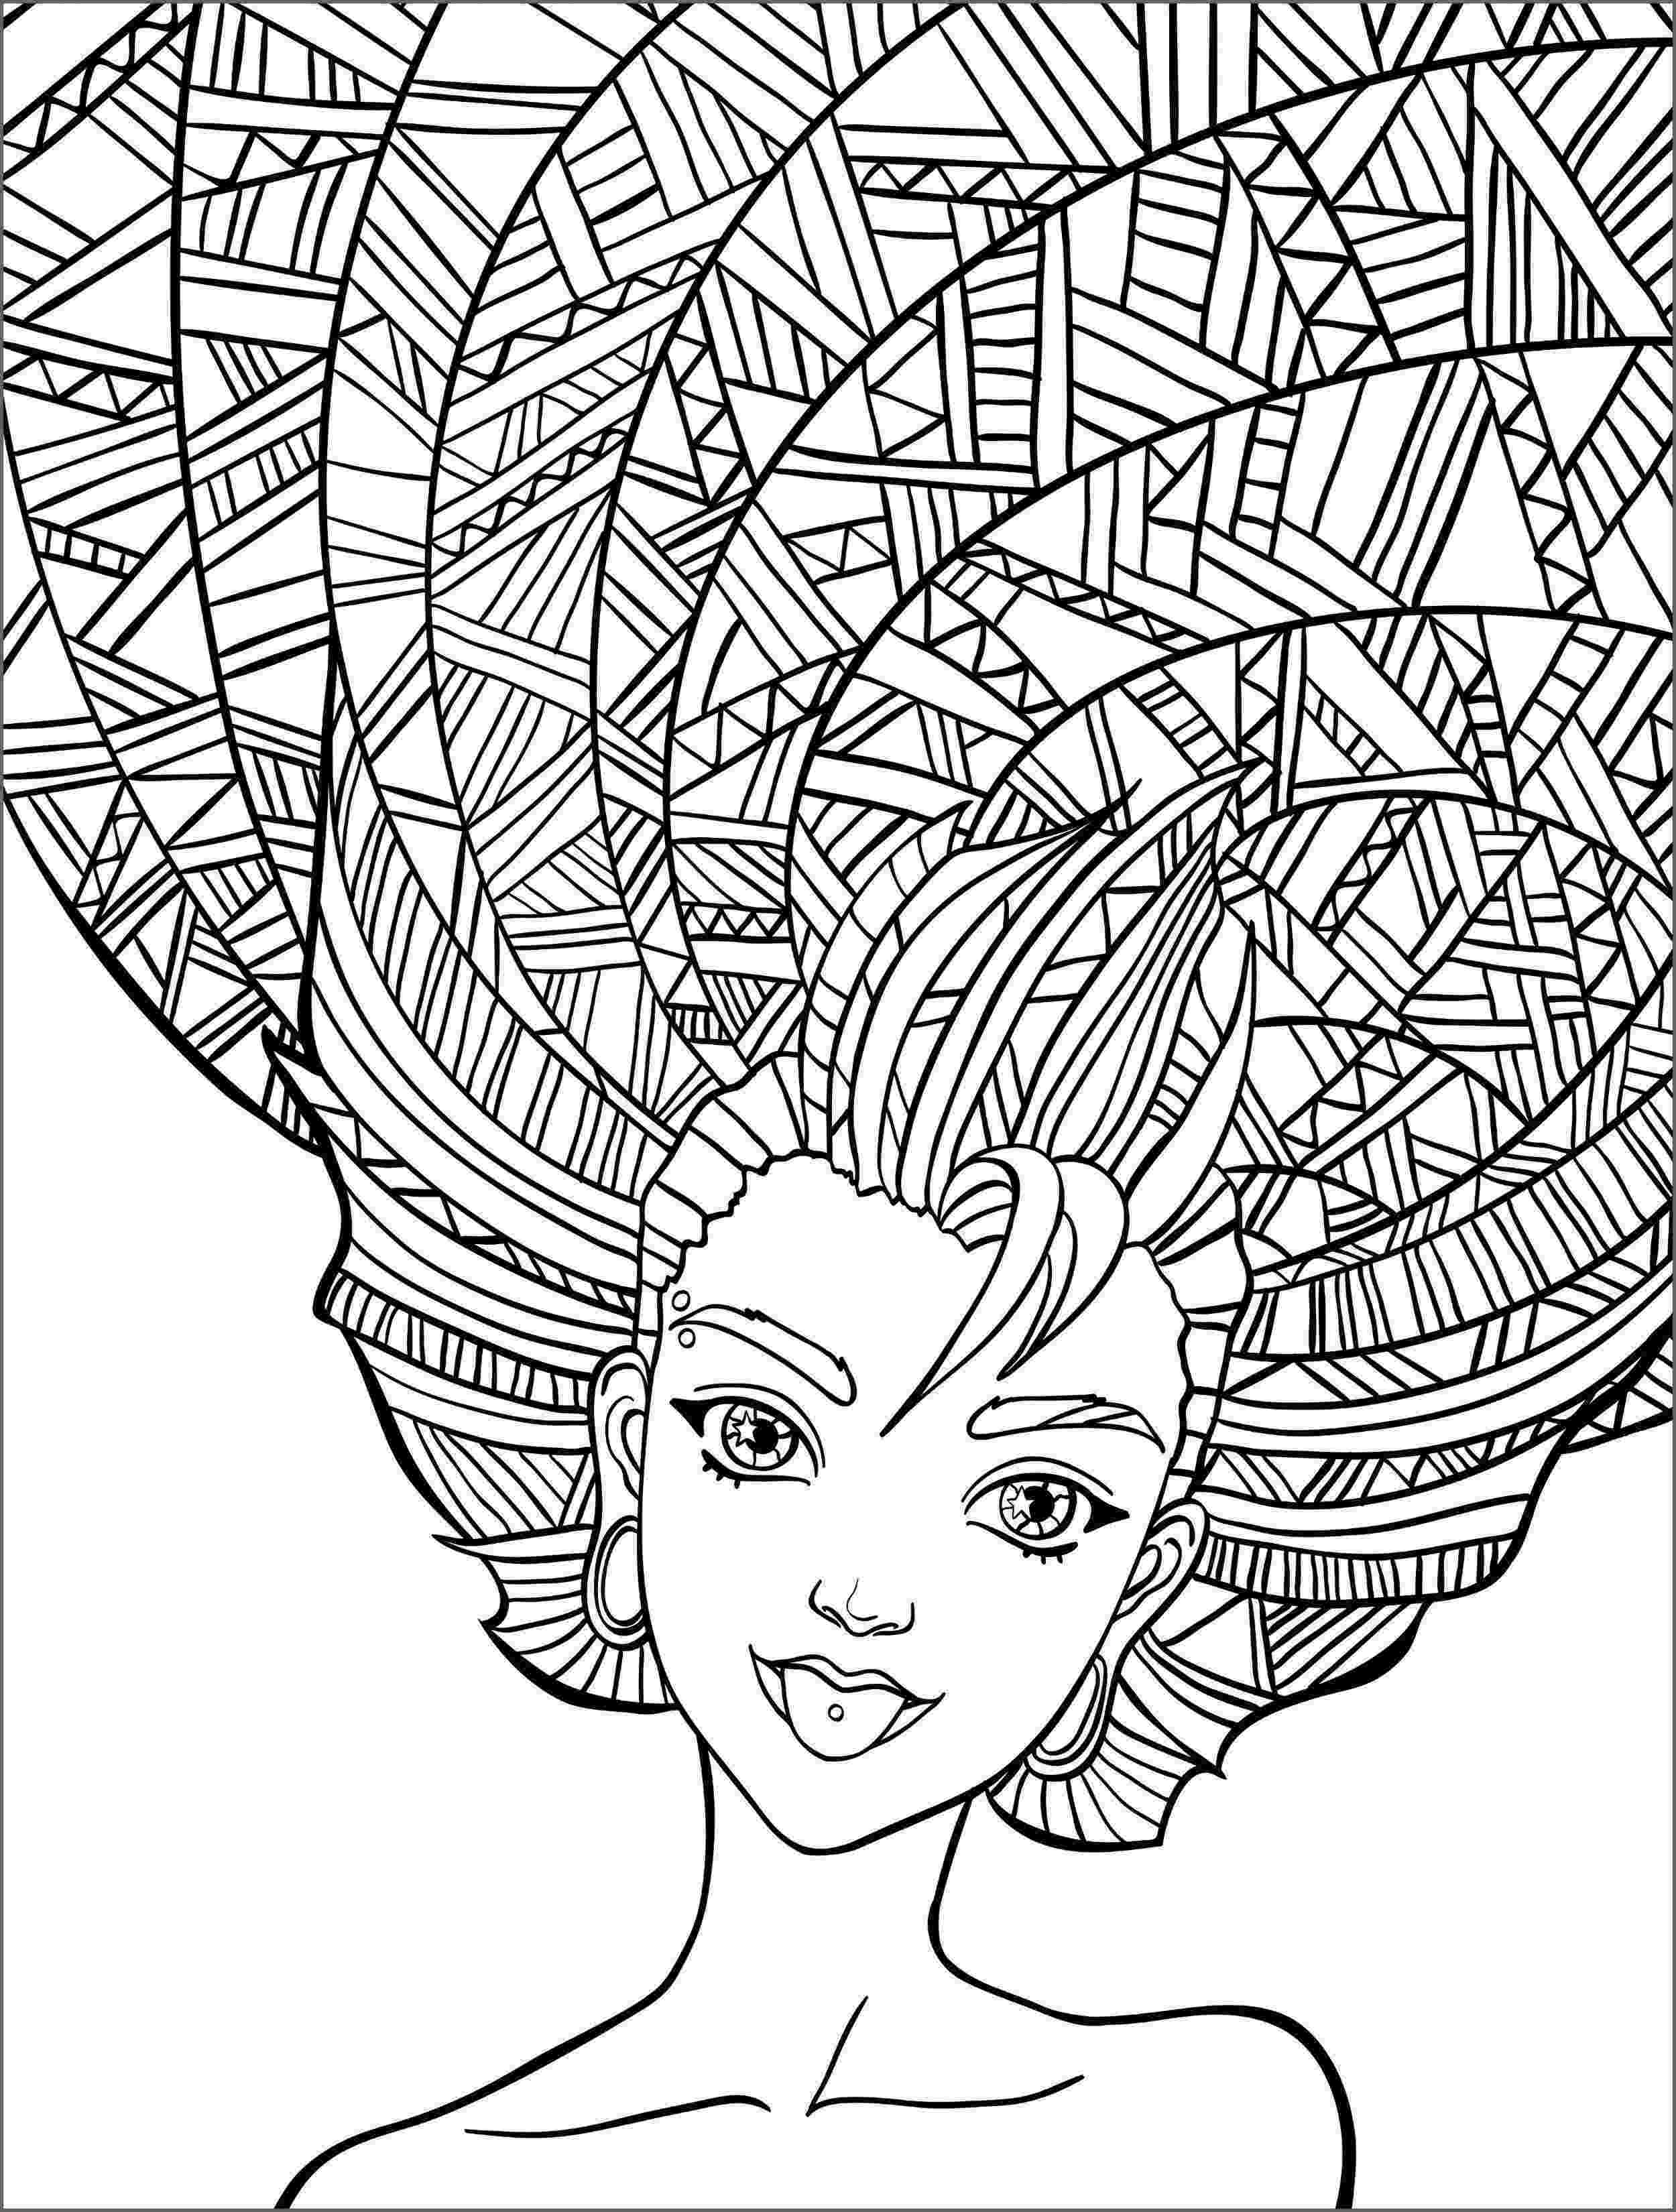 free coloring pages printable for adults pin by deanna lea on raven39s grown up coloring coloring coloring for adults printable pages free